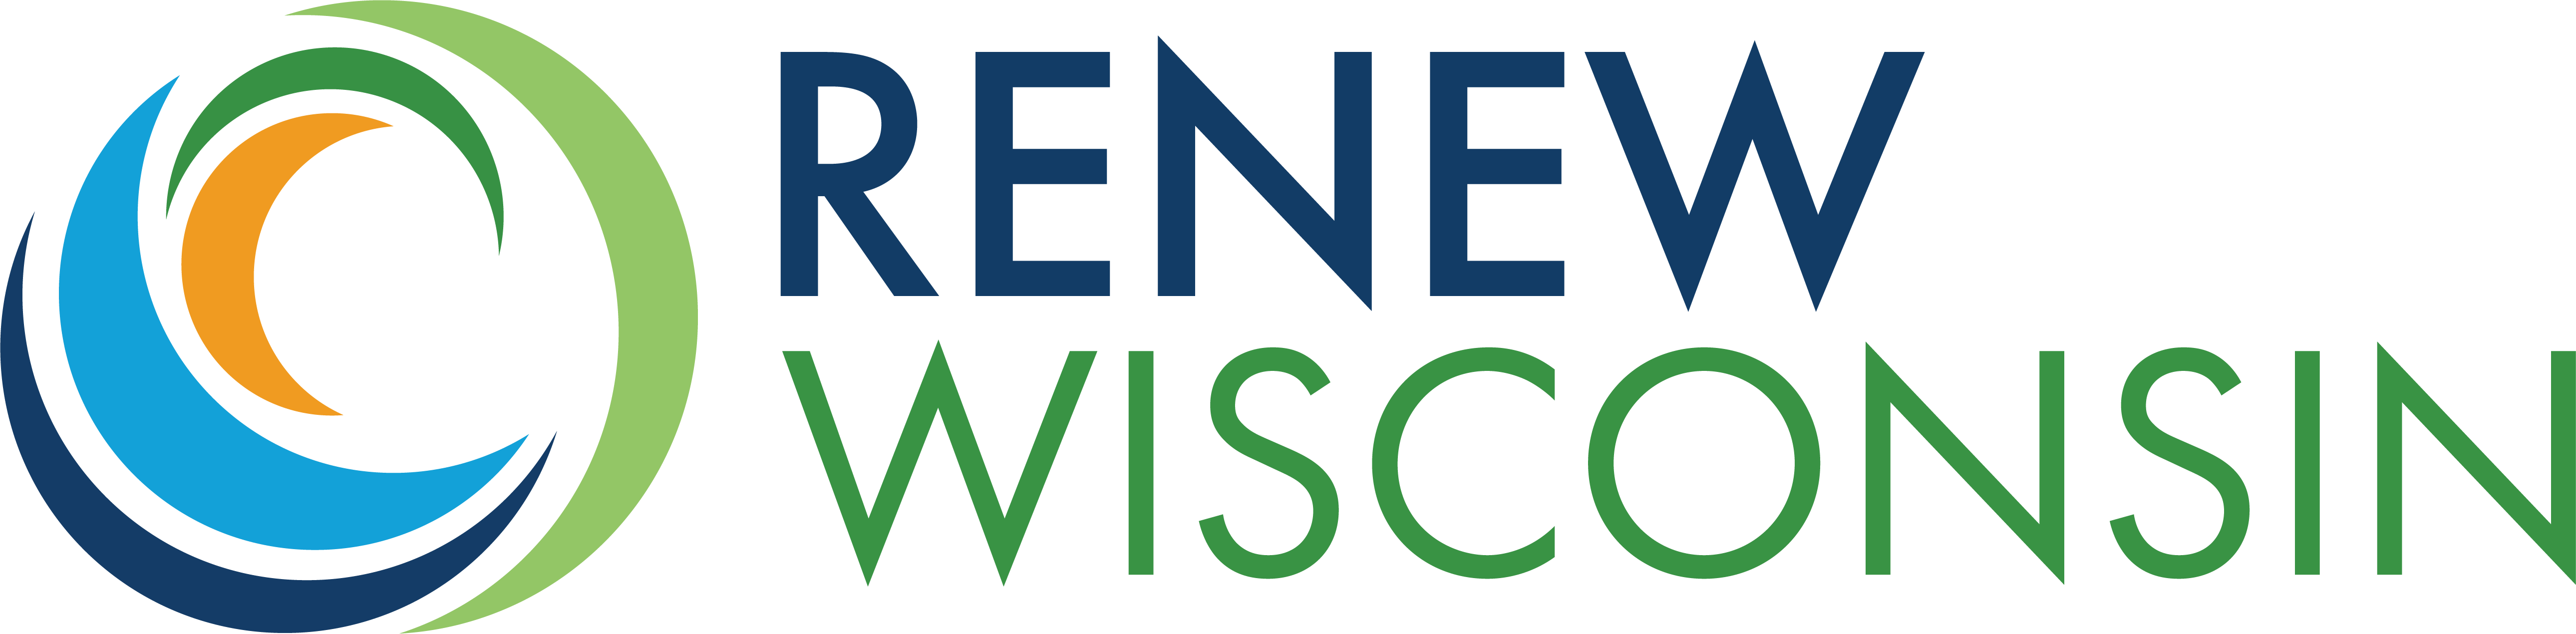 Renew Wisconsin logo